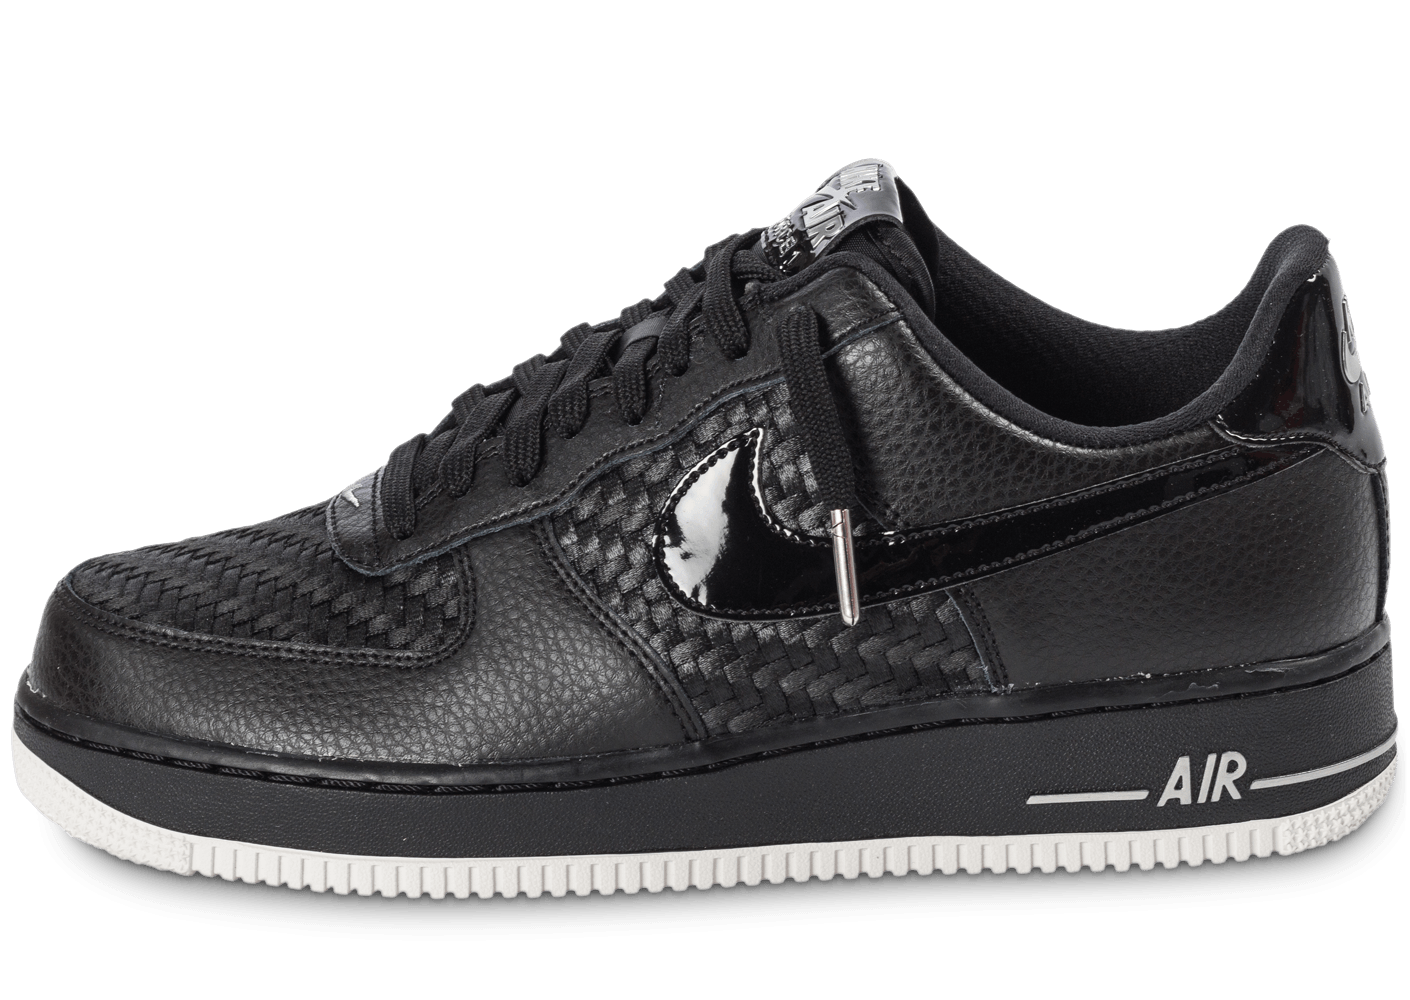 Nike Air Force SE Low noire Chaussures Baskets Chausport 1